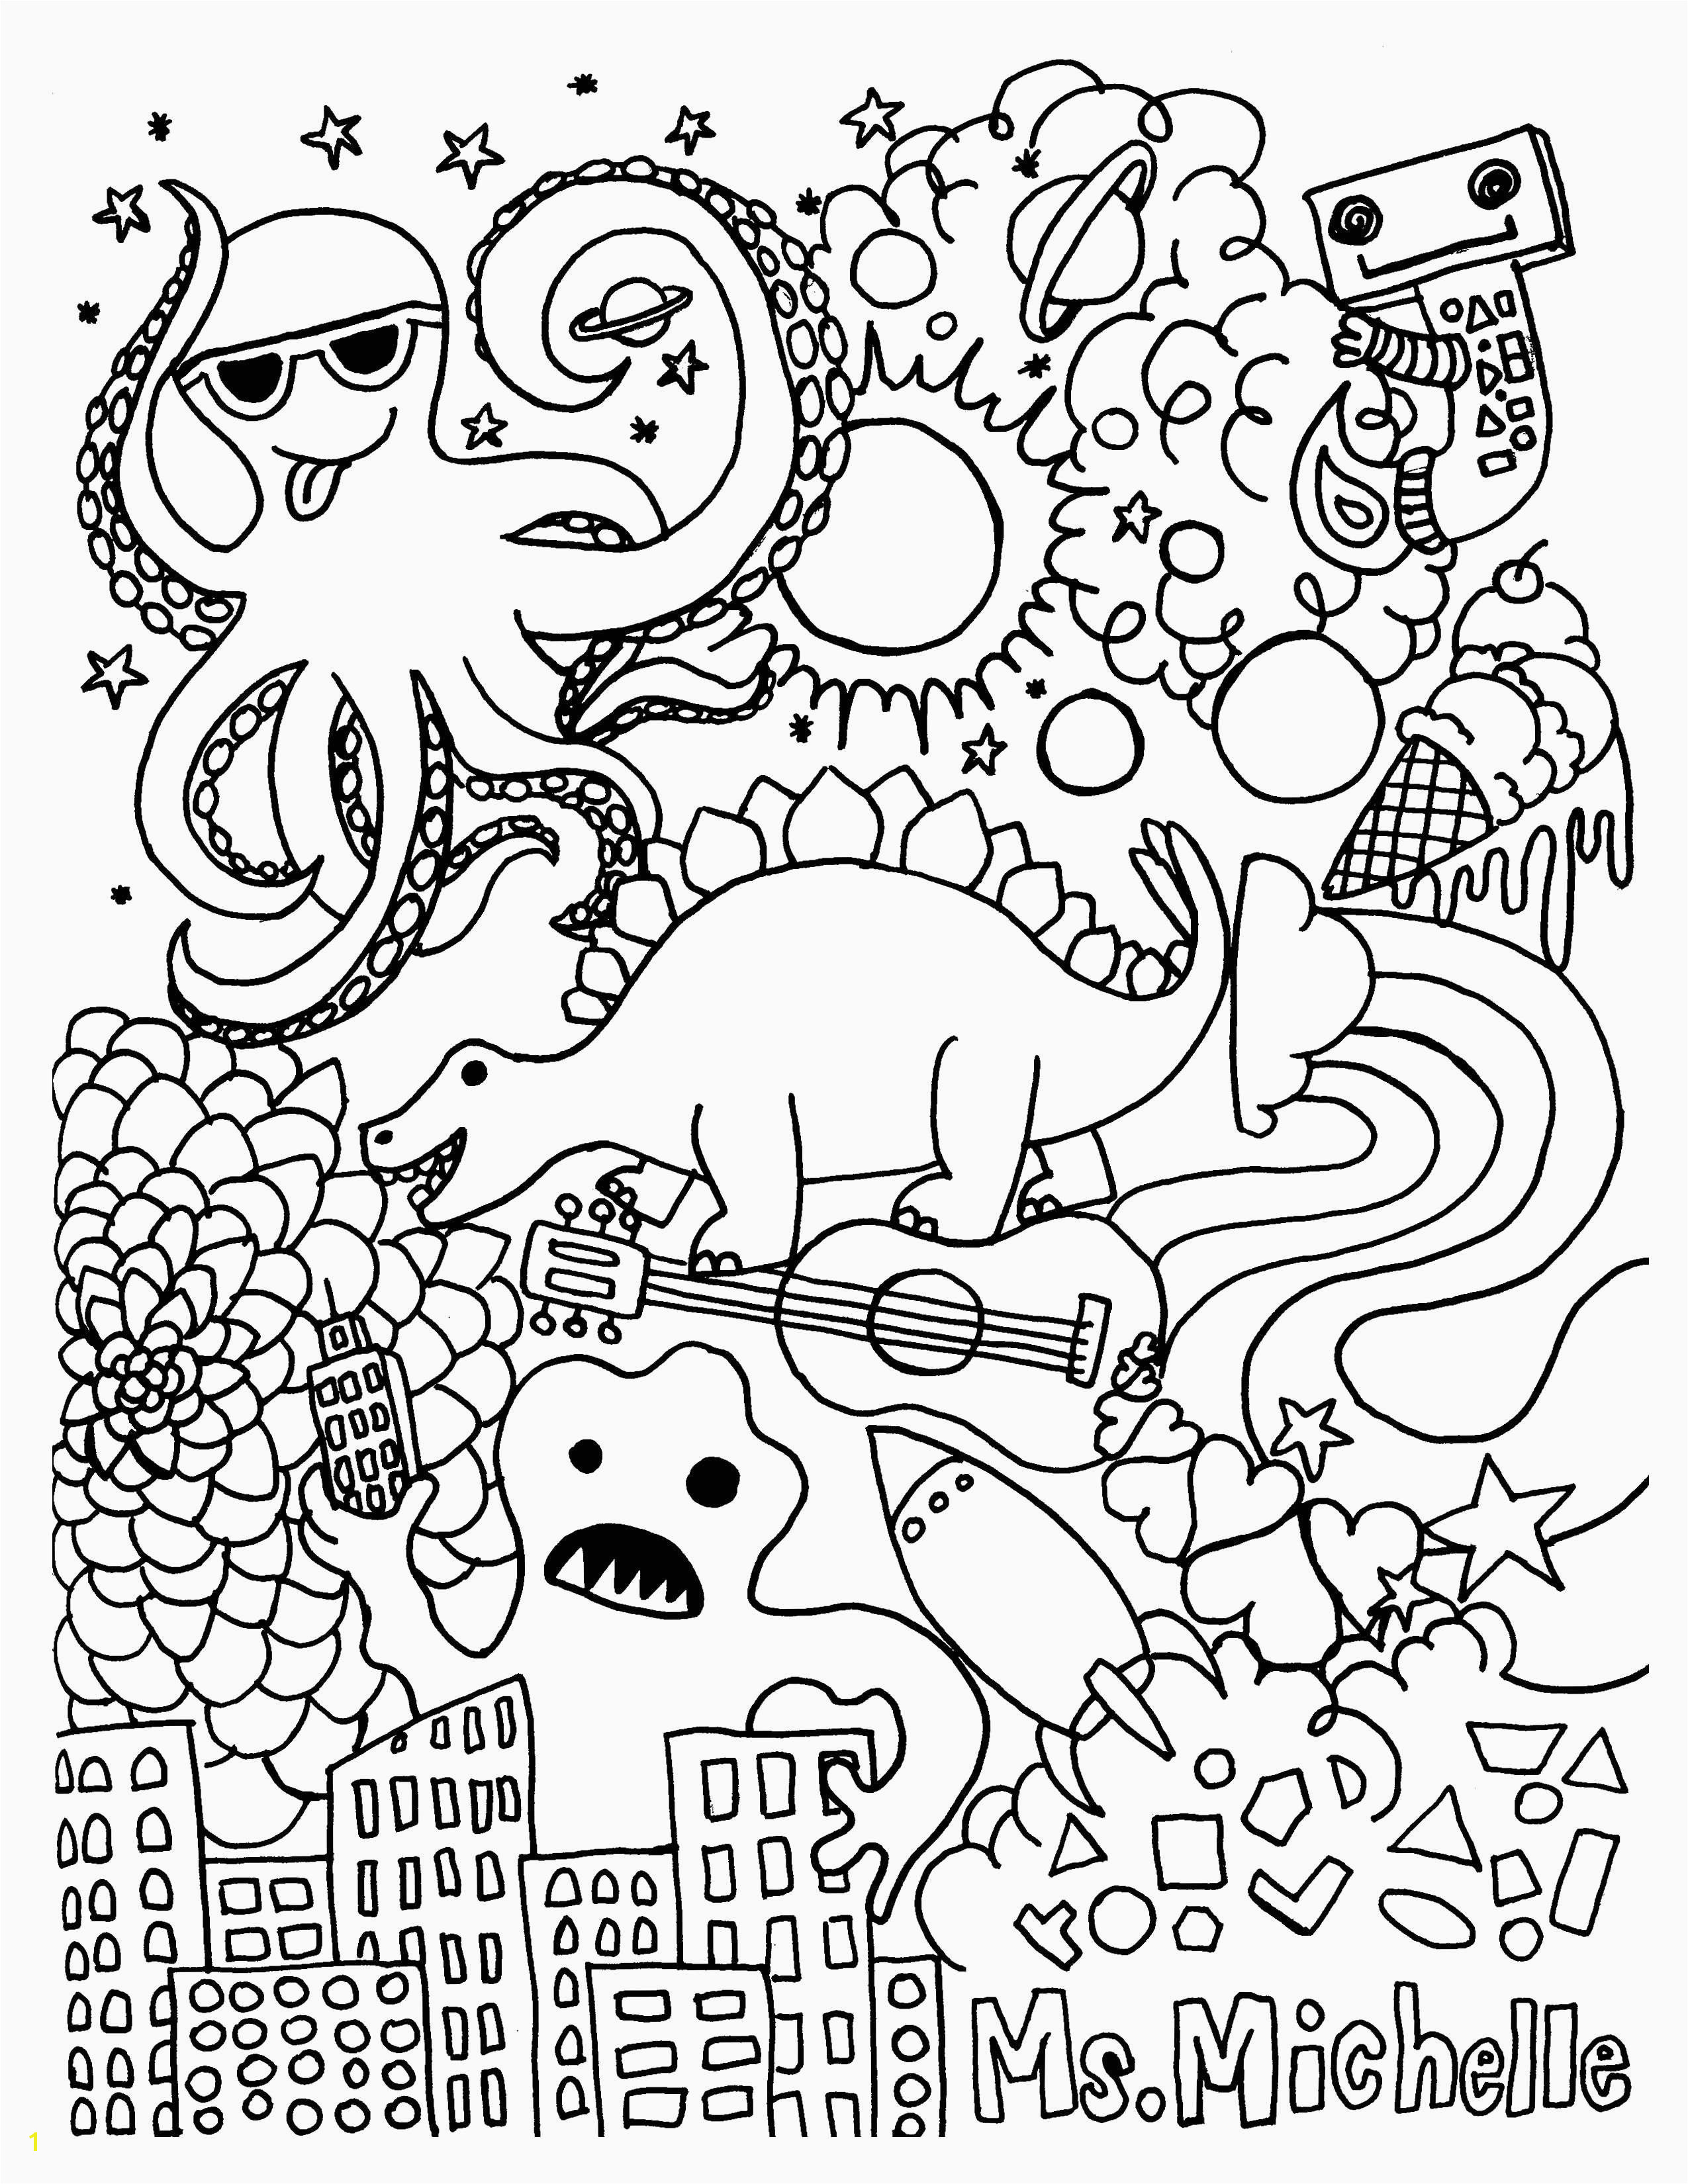 Mermaid Coloring Pages for Adults Free Coloring Pages for Halloween Unique Best Coloring Page Adult